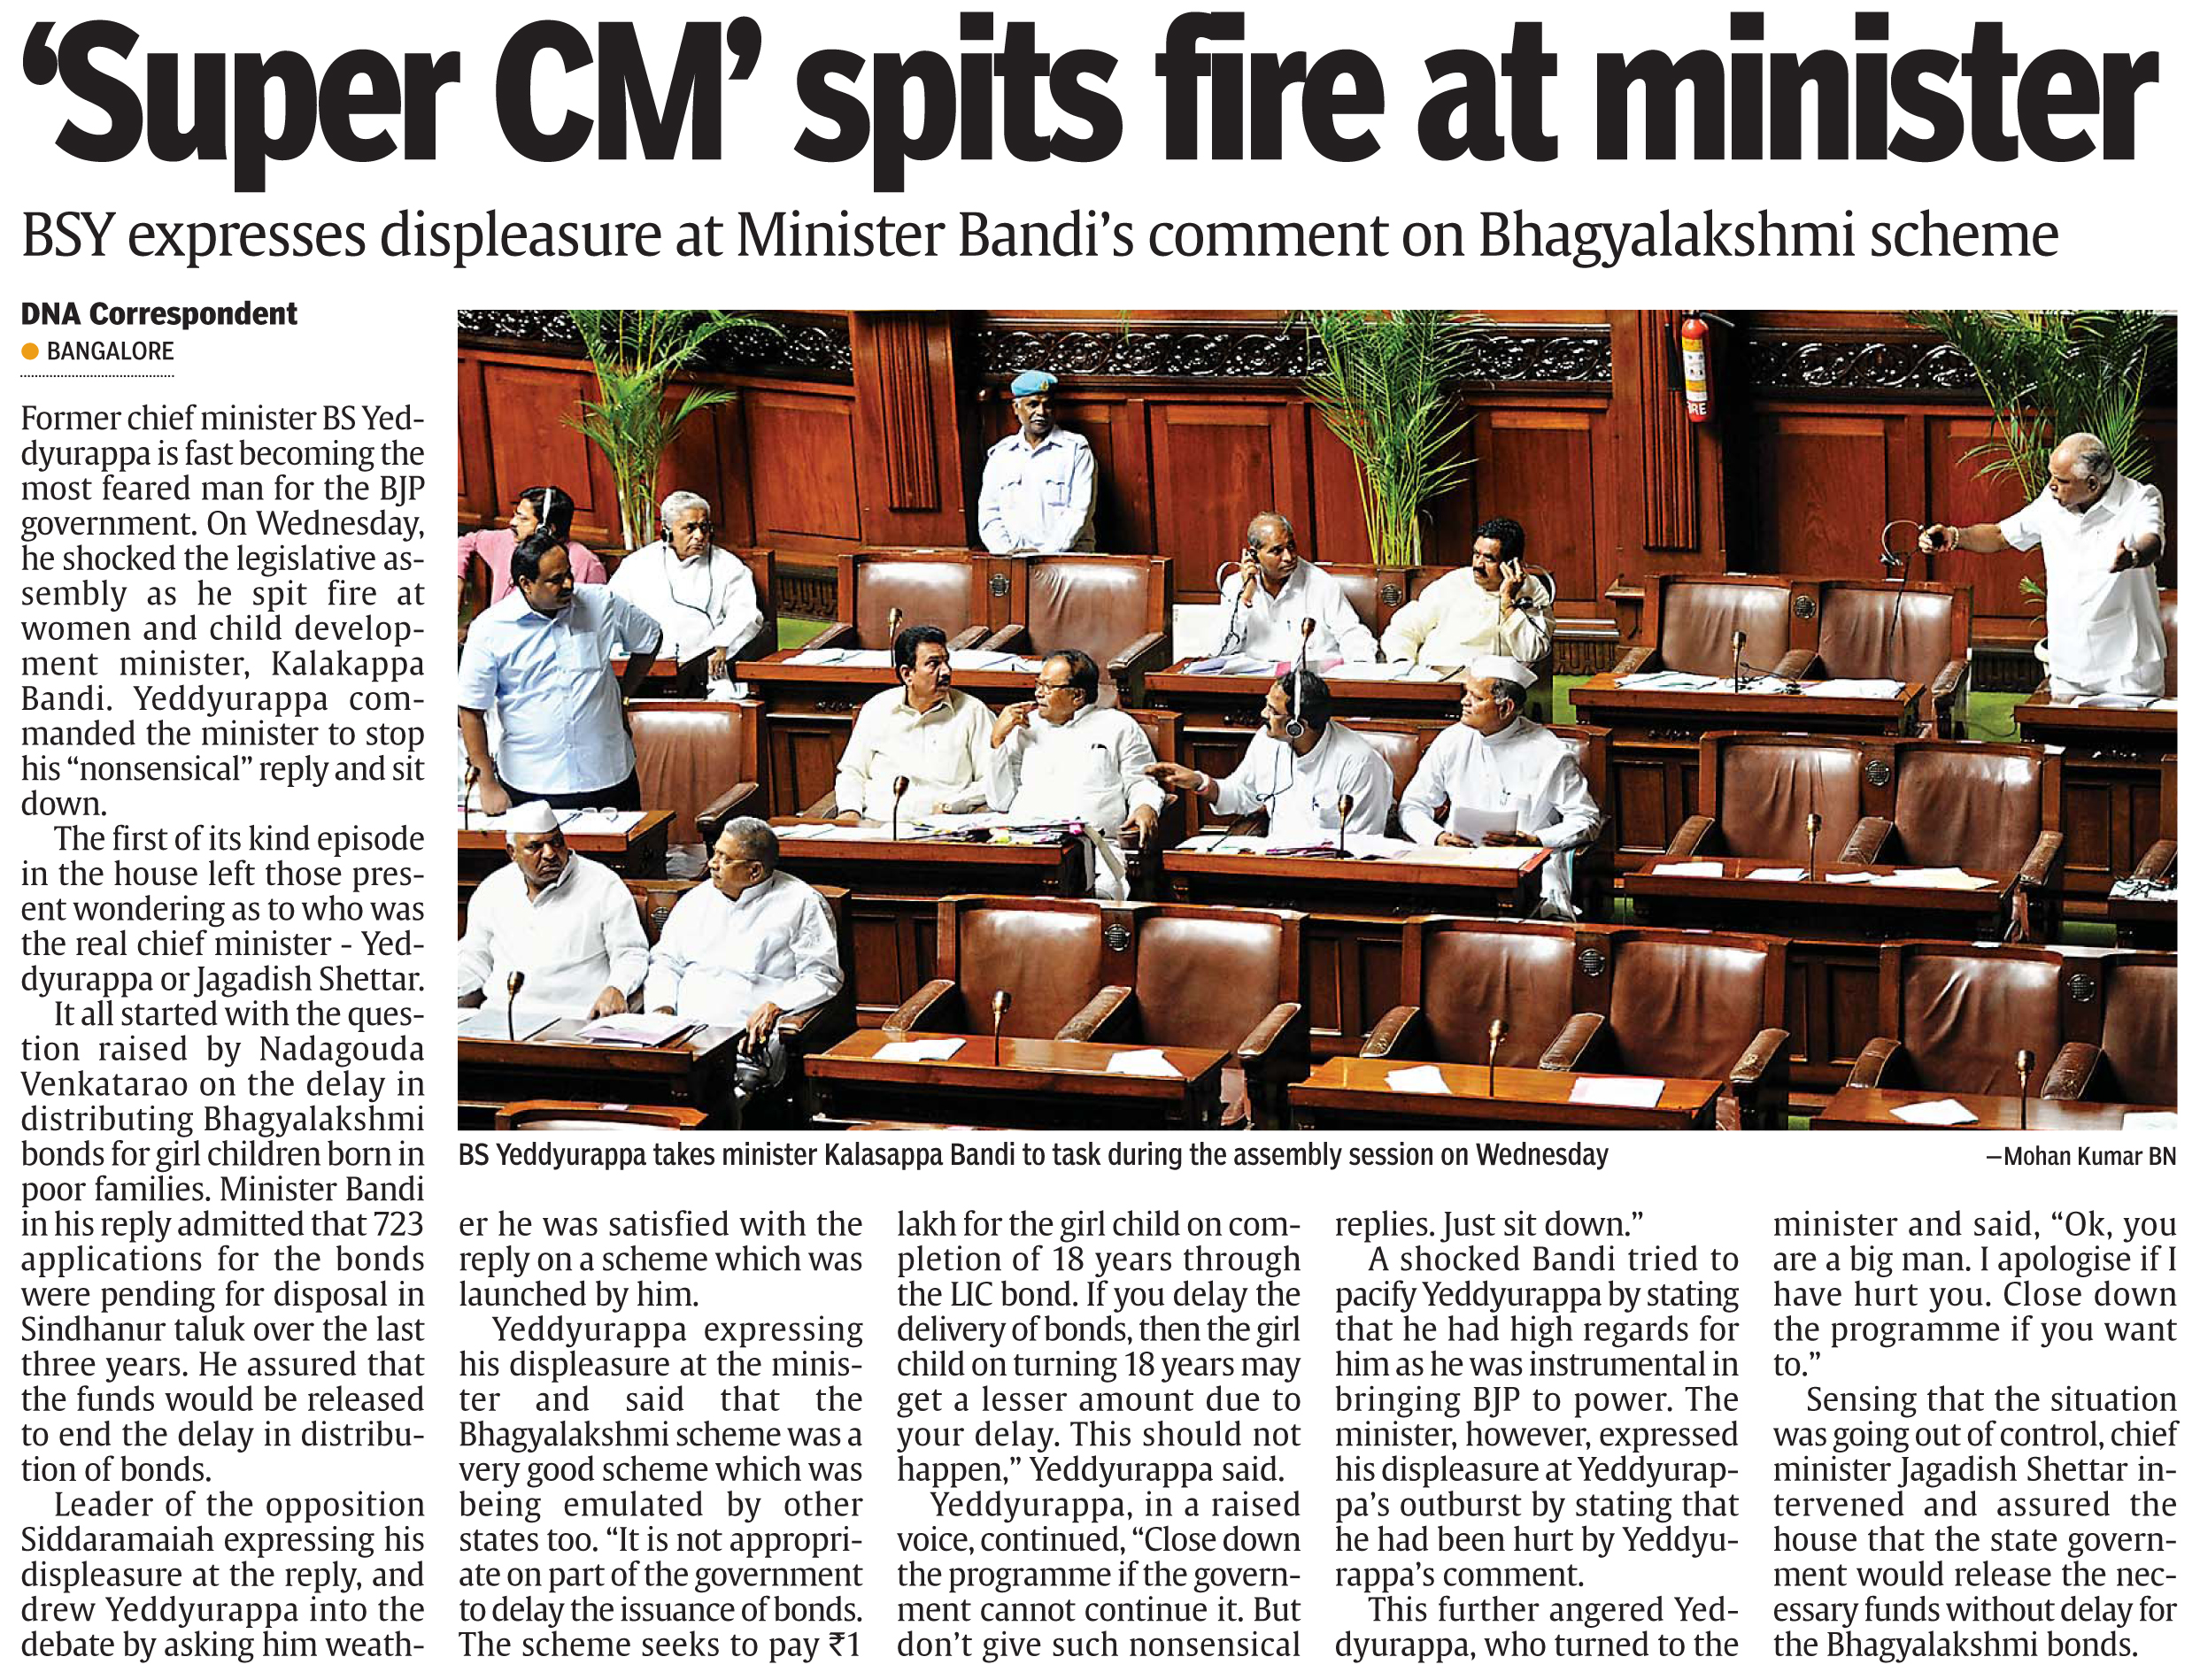 'Super CM' spits fire at minister